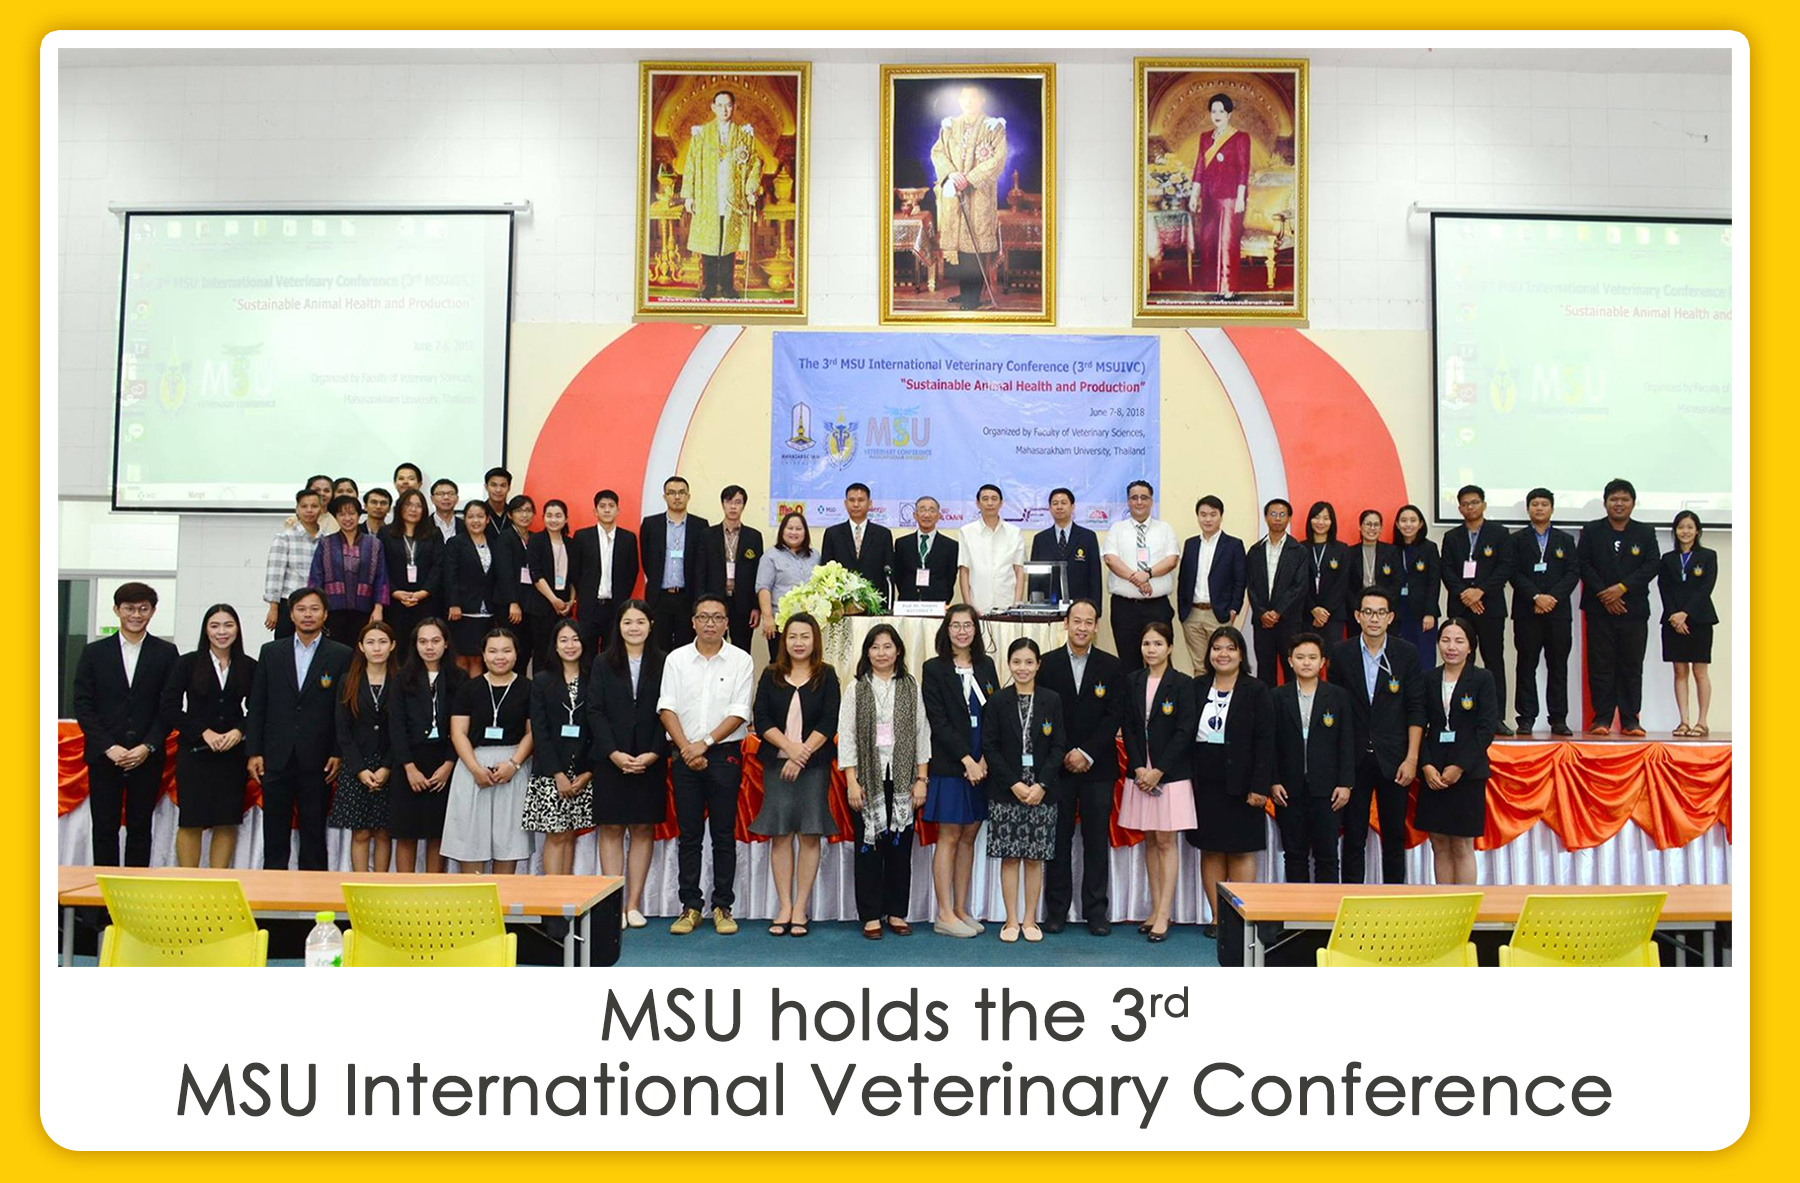 MSU holds the 3rd MSU International Veterinary Conference